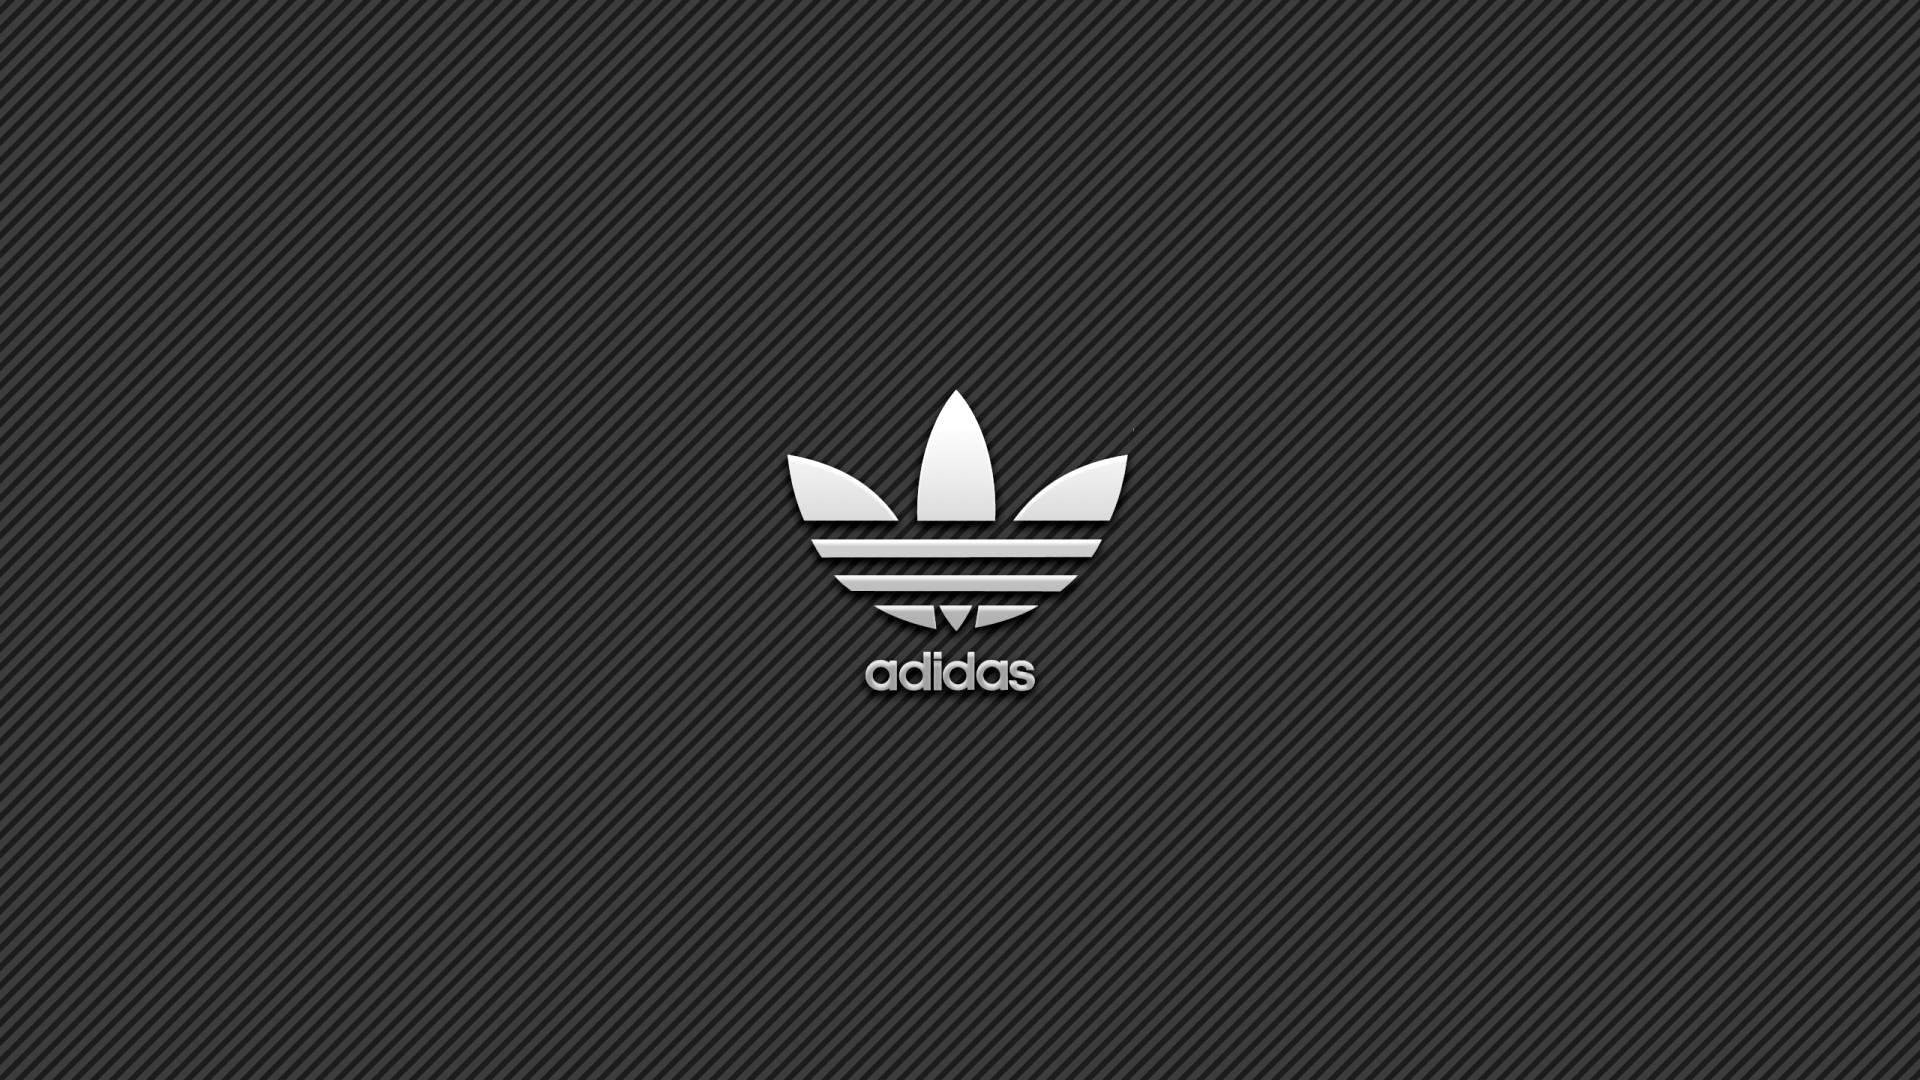 Adidas Logo Wallpapers ·① WallpaperTag